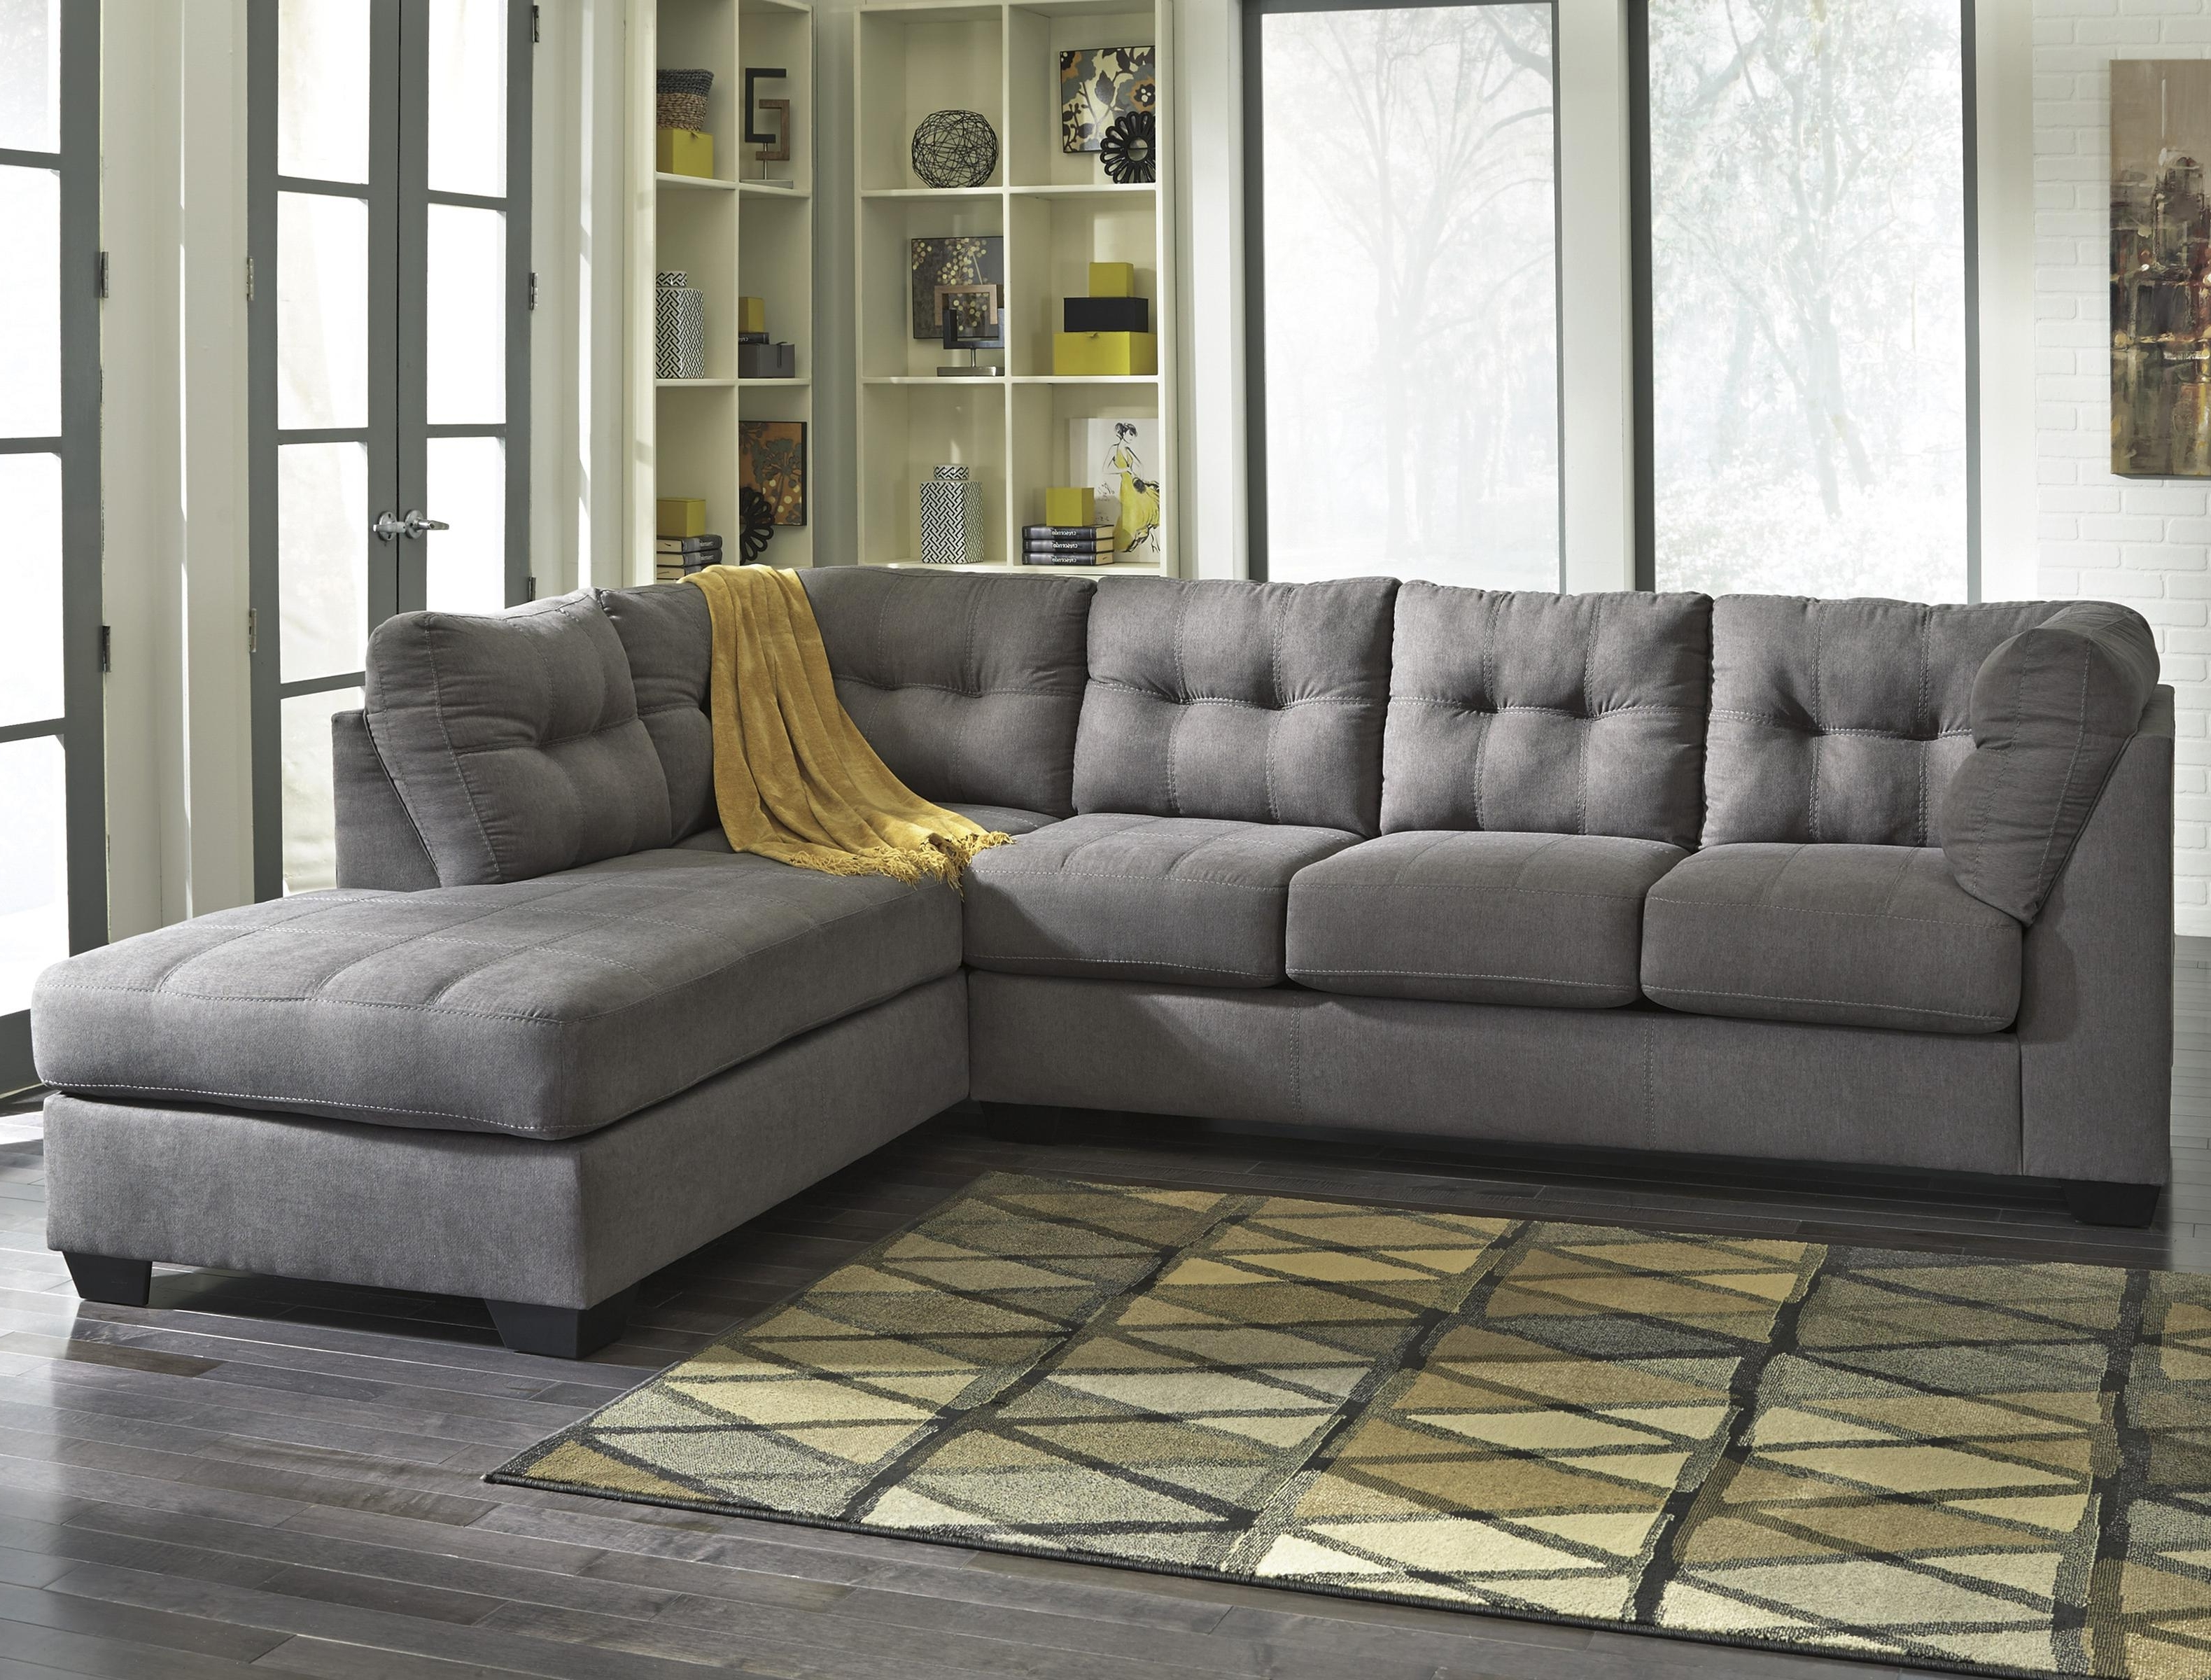 Benchcraft Maier – Charcoal 2 Piece Sectional With Right Chaise Pertaining To Newest Long Chaise Sofas (View 2 of 15)